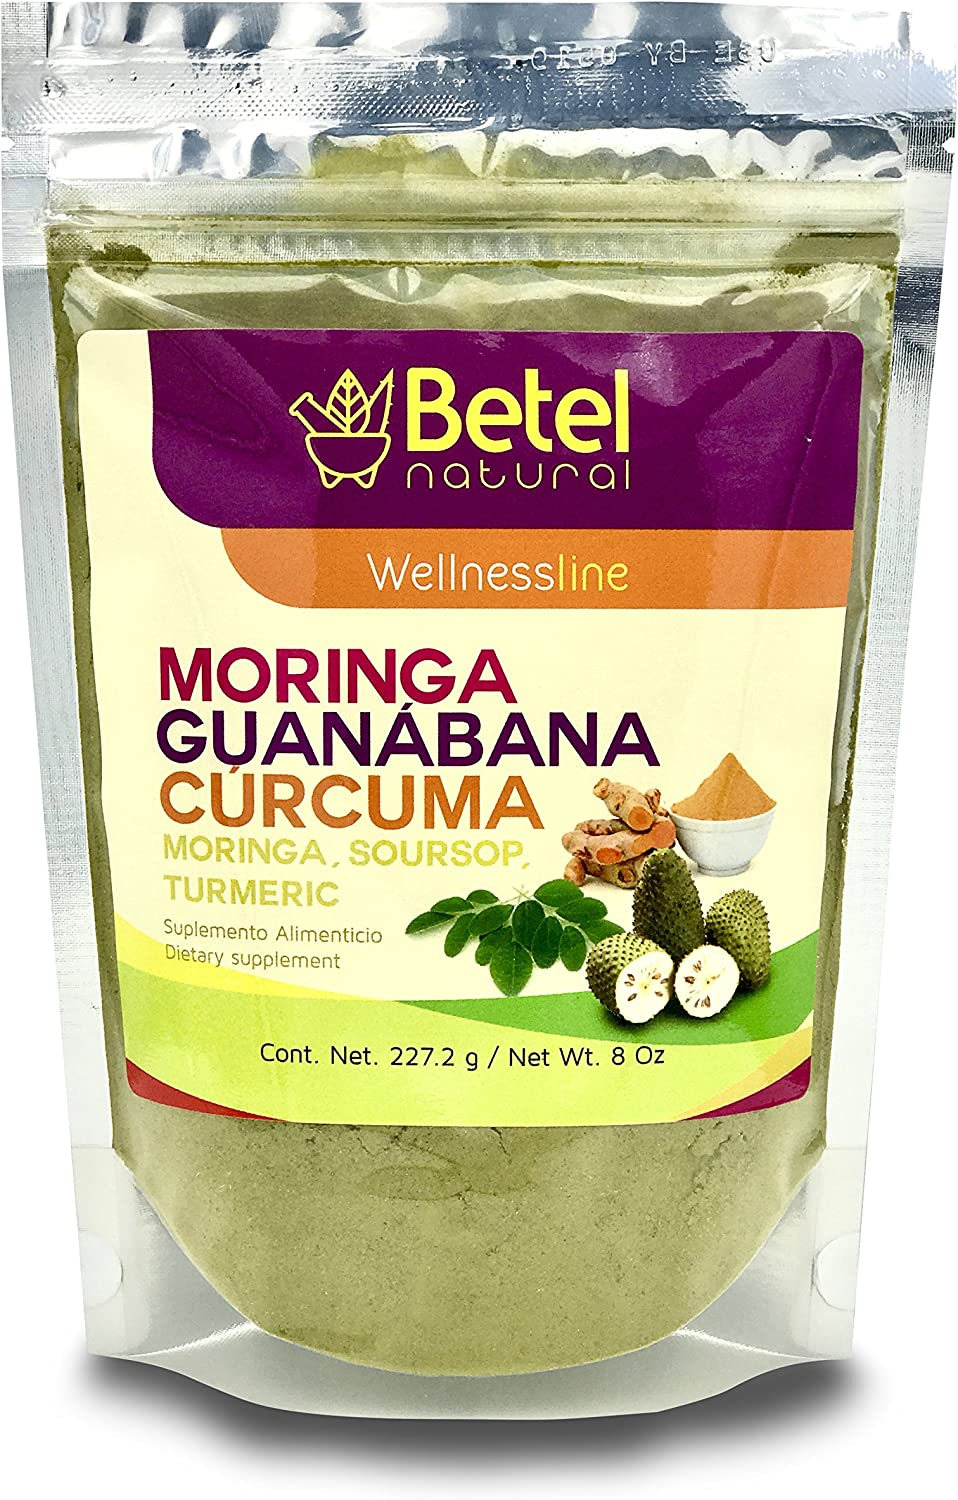 Moringa Guanabana and Curcuma Powder - Betel Natural 8 Oz